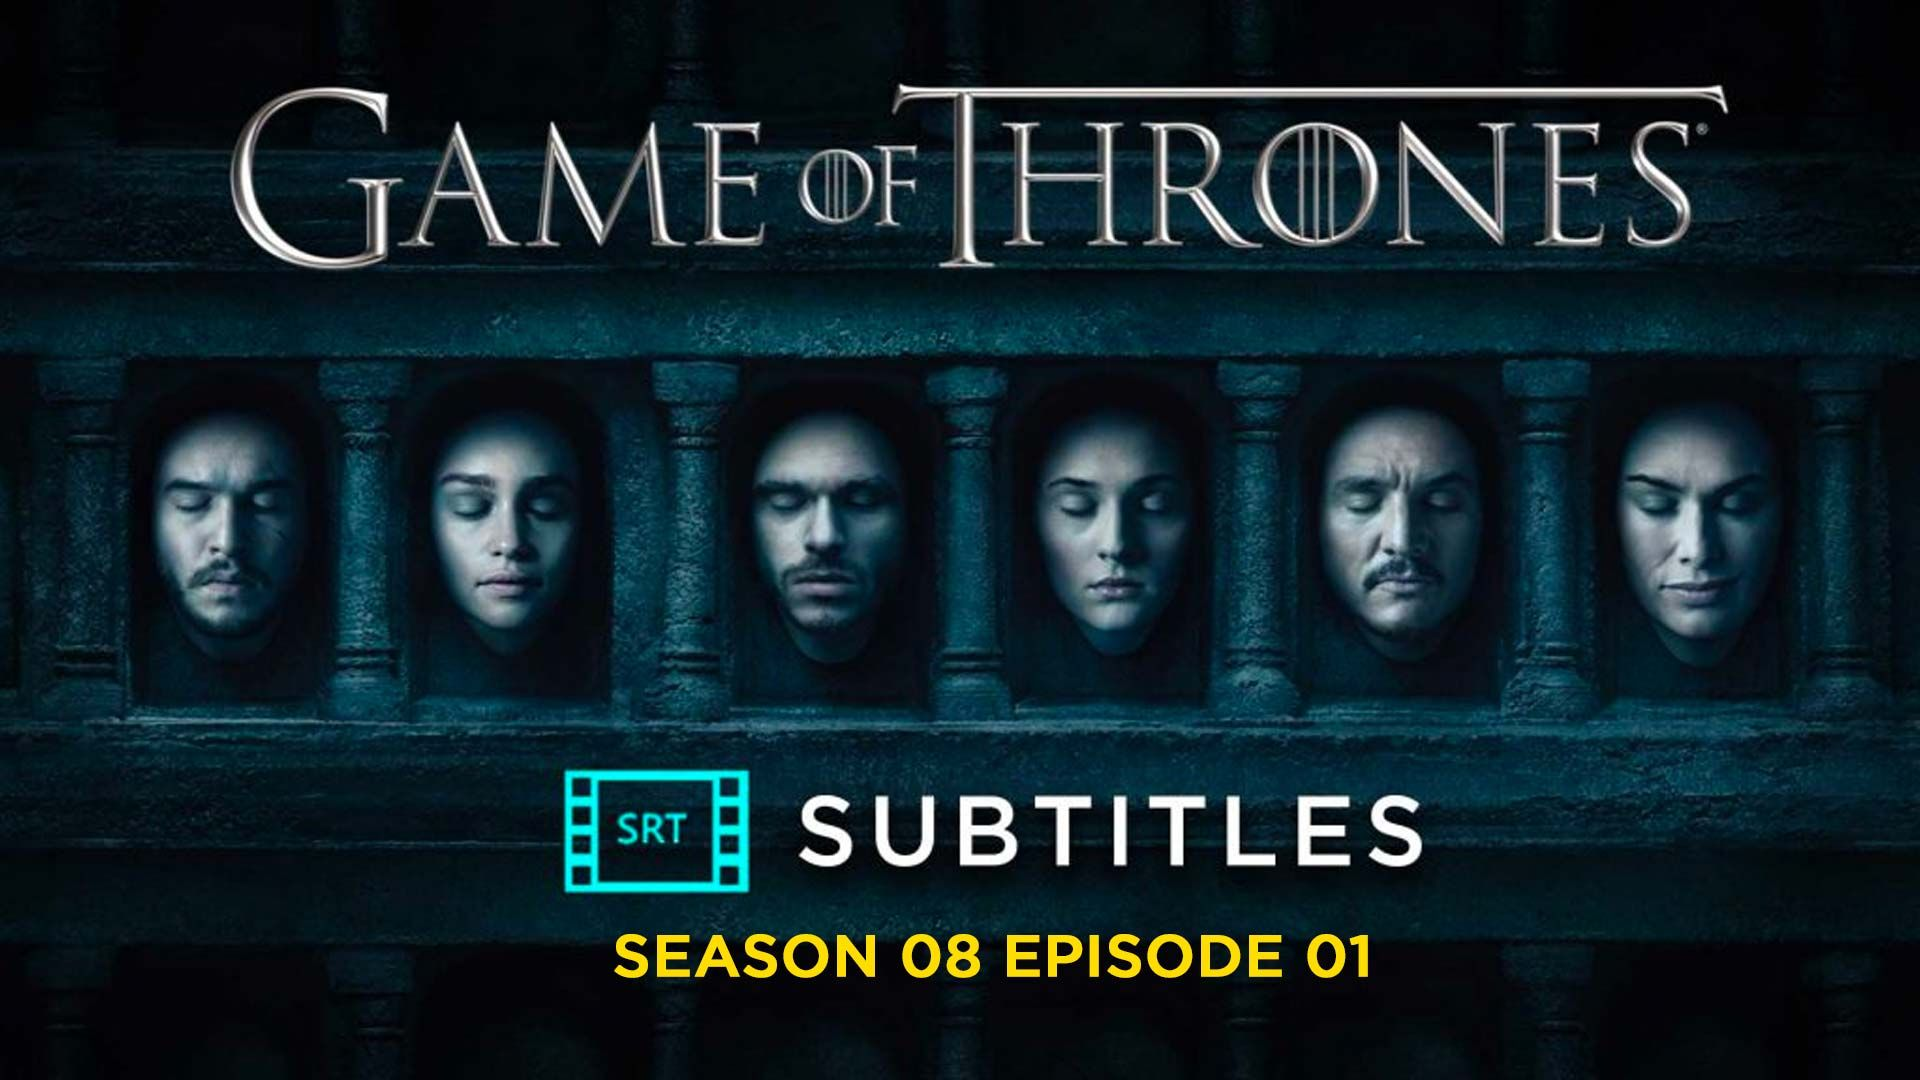 Gam of thrones s08e01 subtitle download  Download  srt file